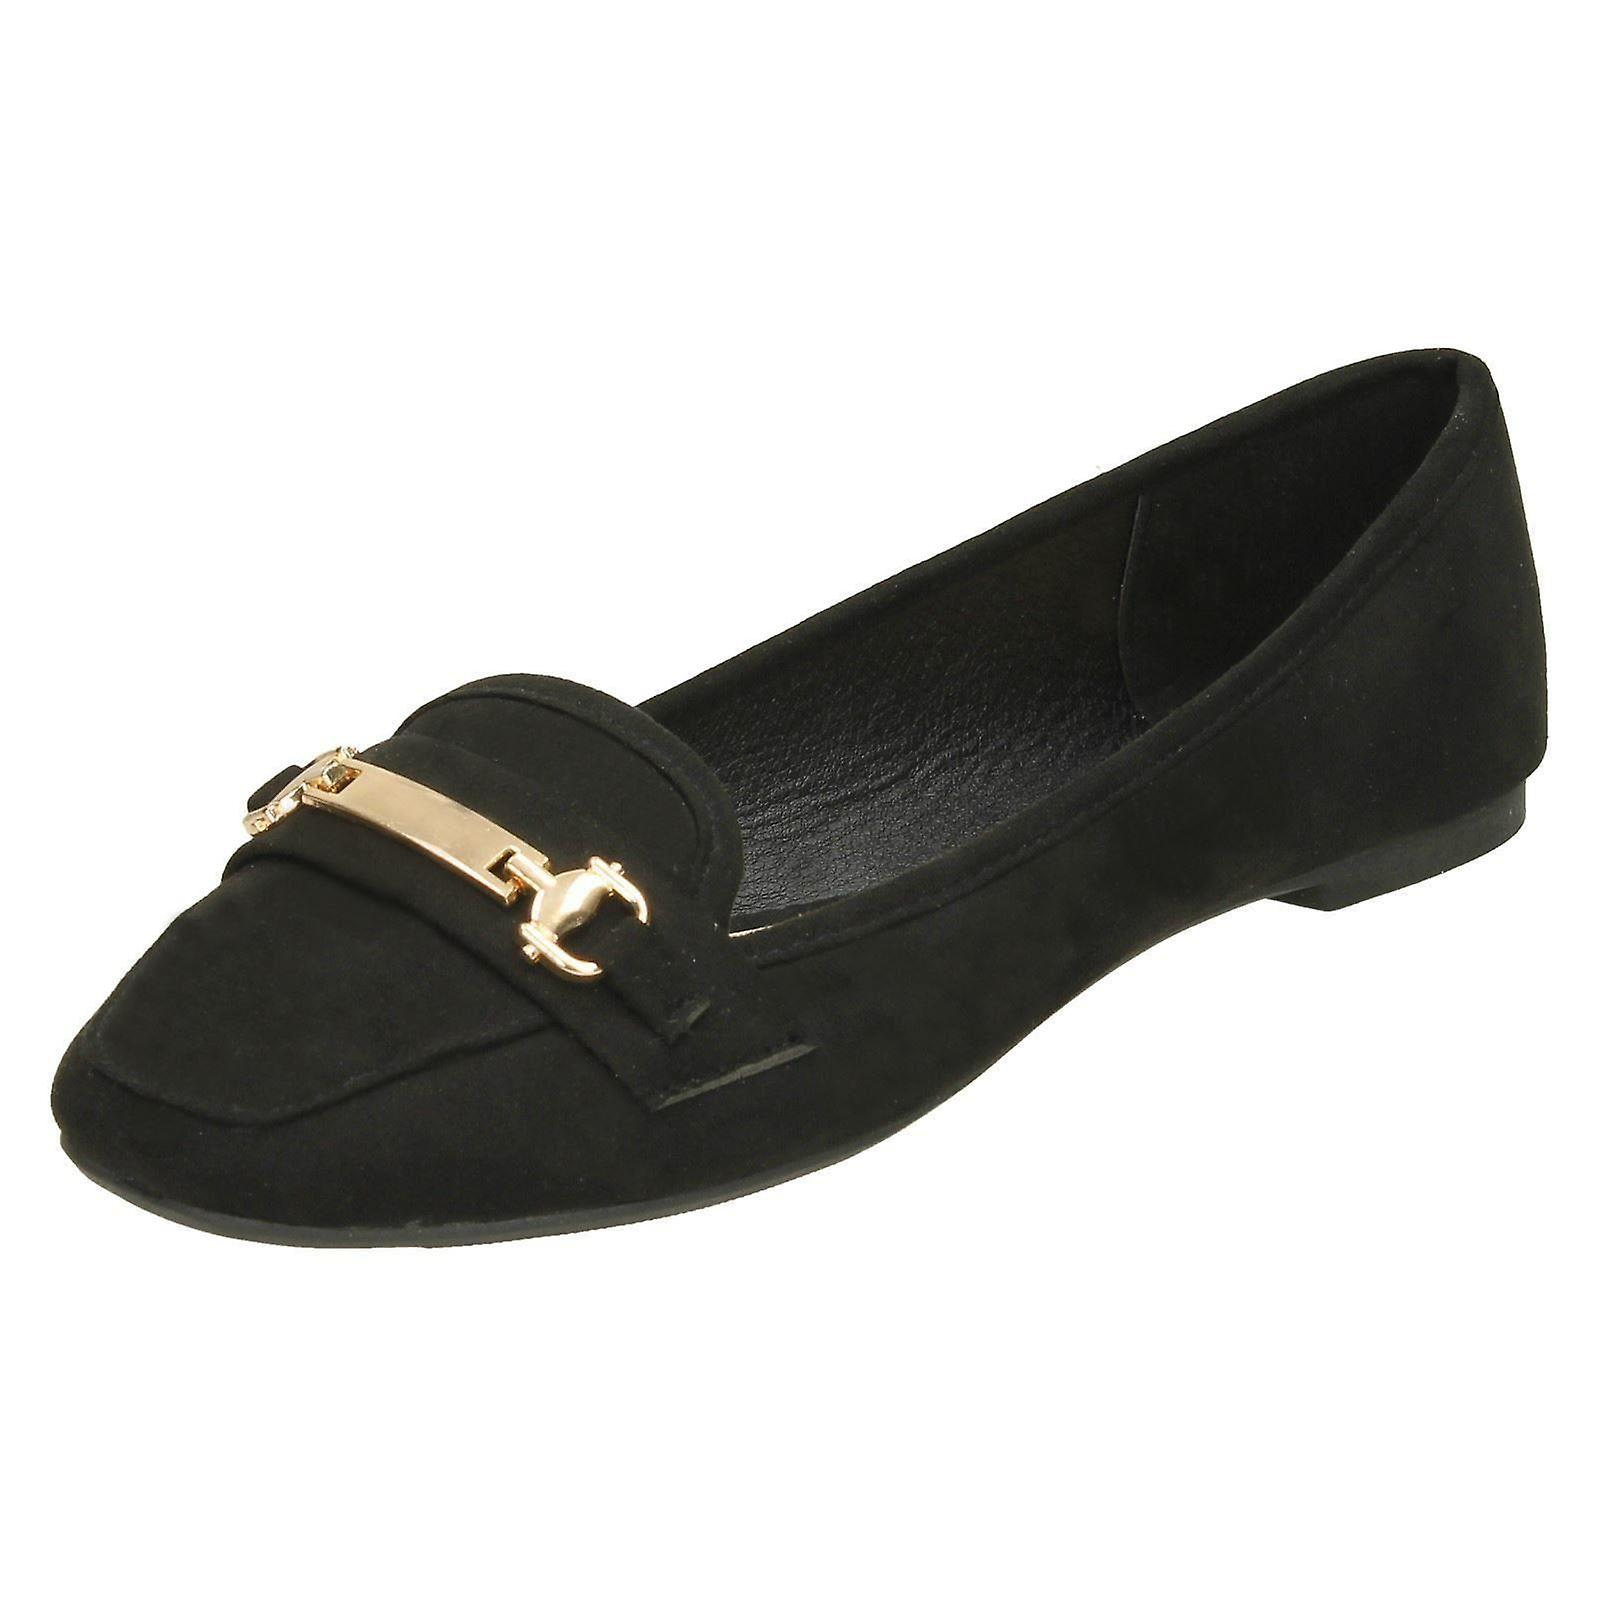 UK US 39 Black Size Size Ladies EU Microfibre Saddle Vamp Loafers 8 On Spot F80373 6 Size xOqW6w8TO